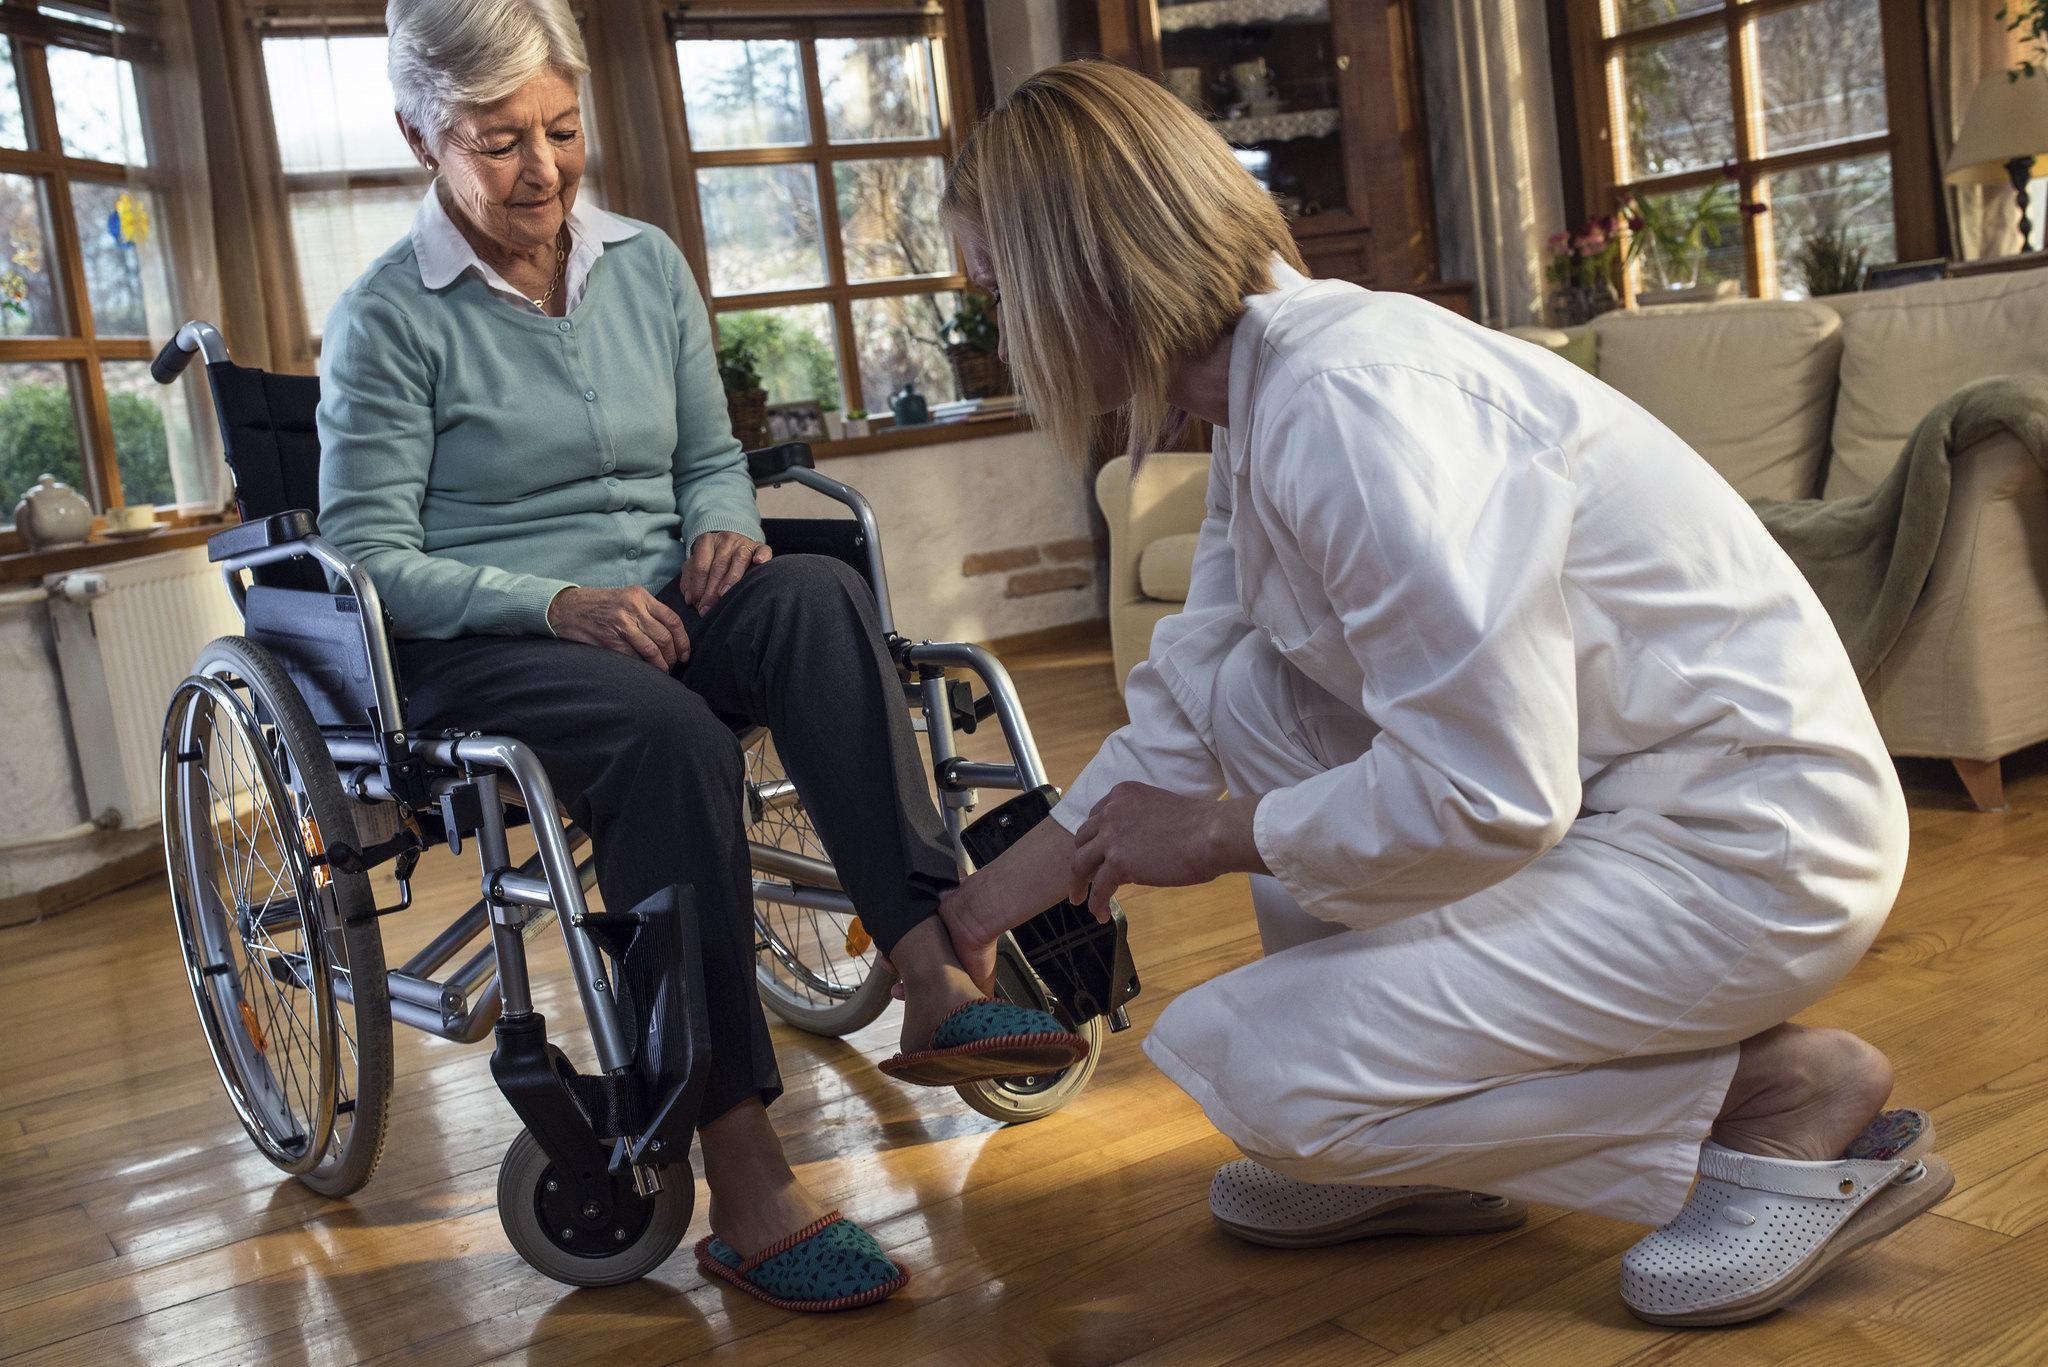 Nurse-with-senior-woman-in-wheelchair-at-home